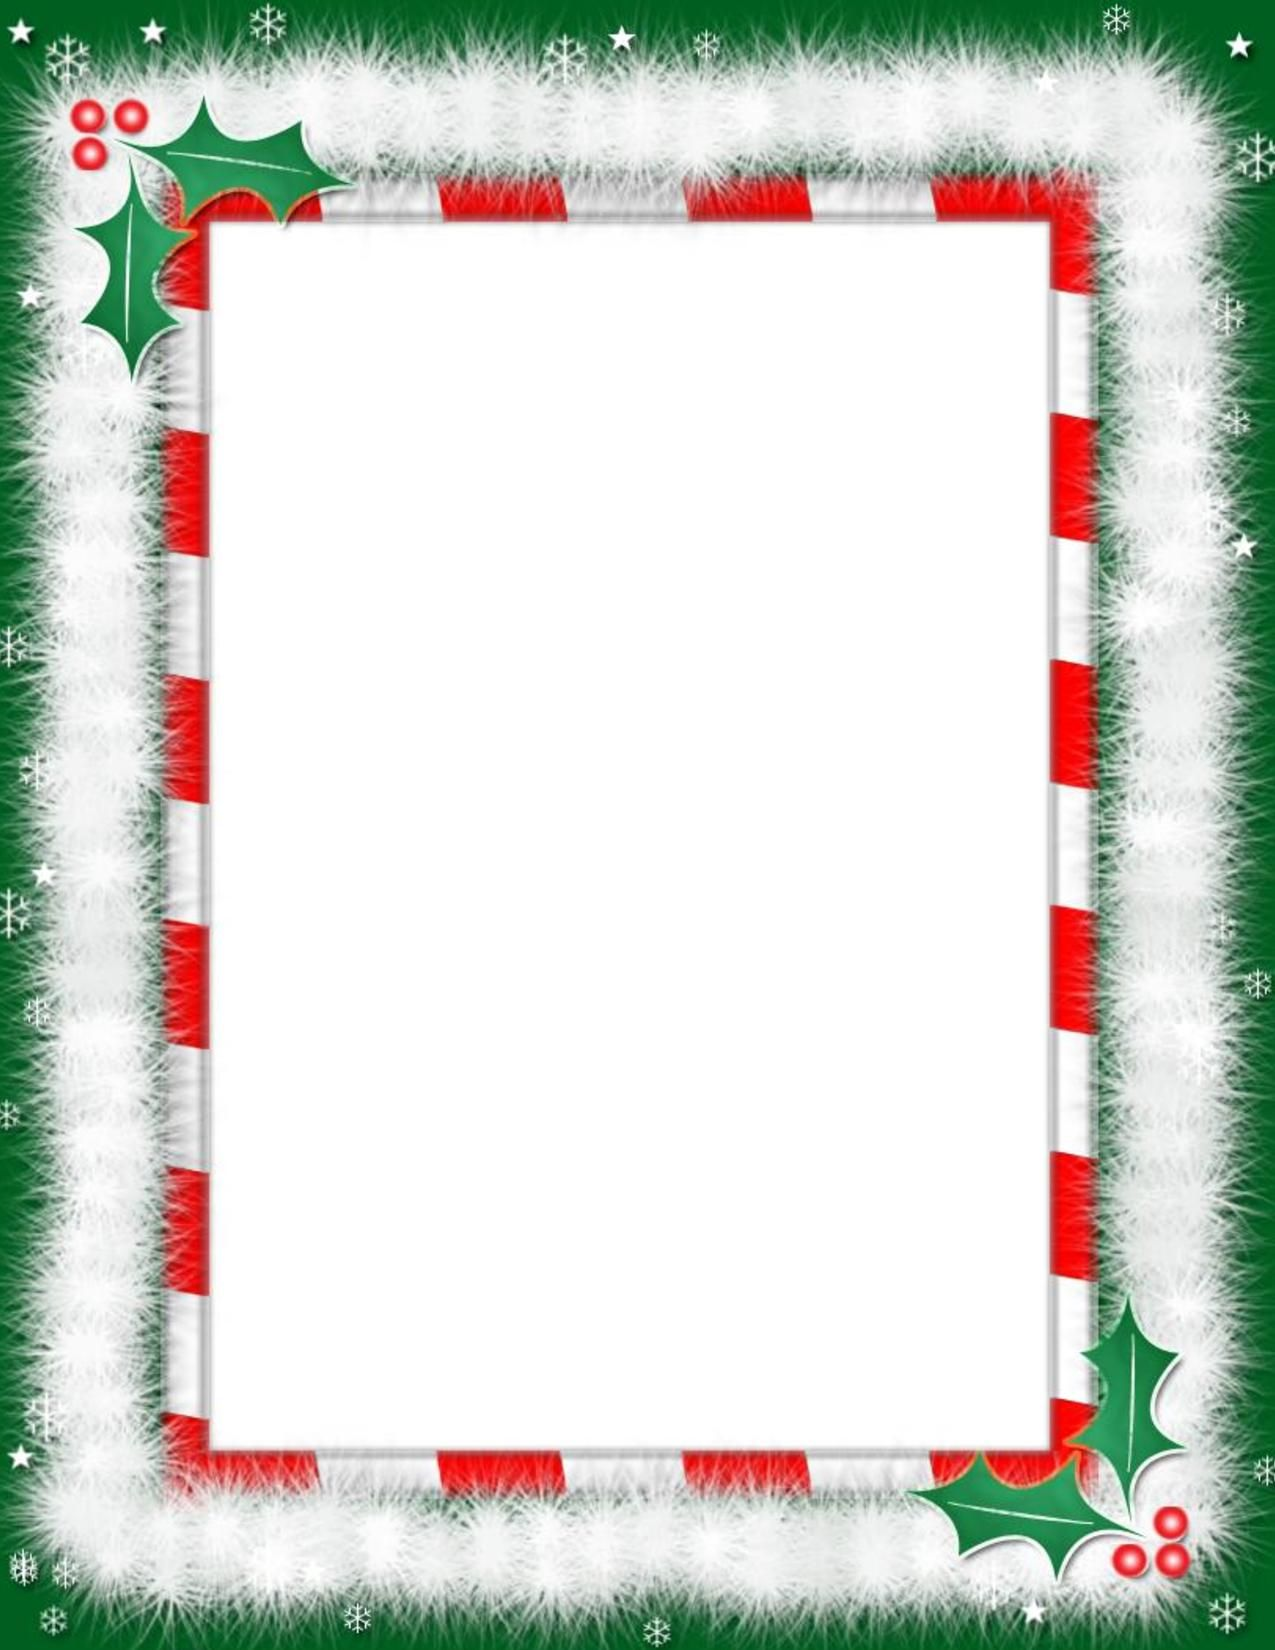 Nice Heart Word Borders Templates Free | ... Borders For Word Documents Christmas  Borders To Ideas Free Word Christmas Templates